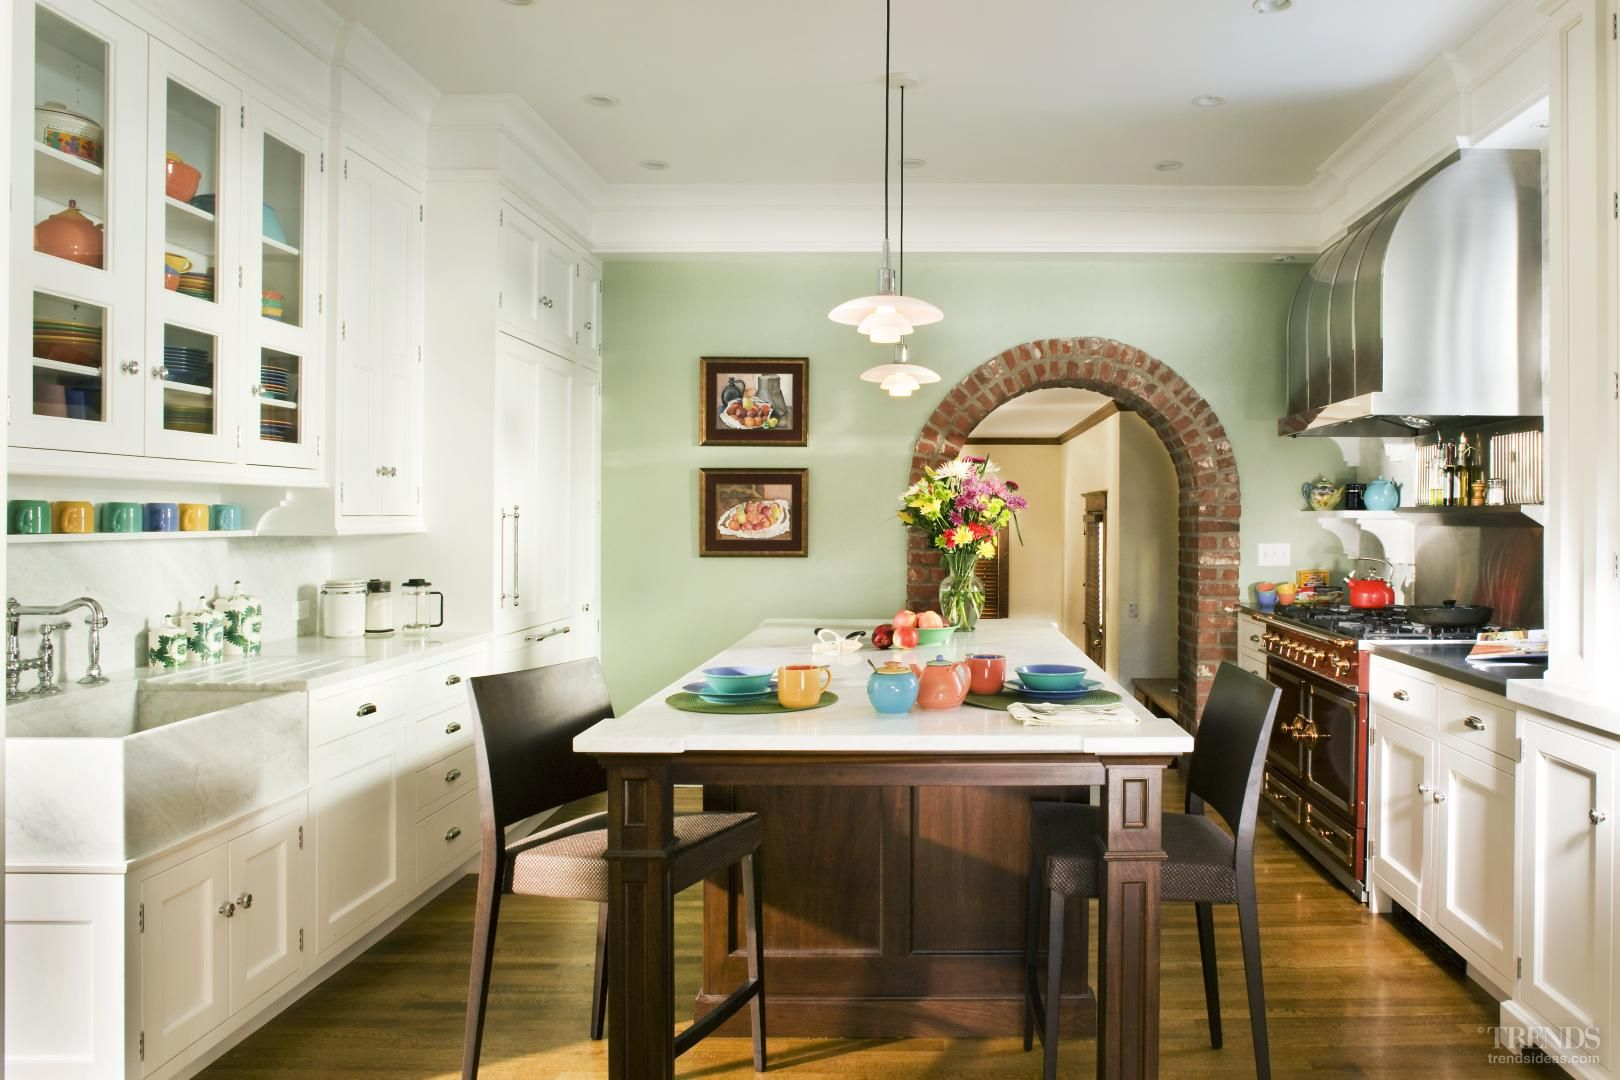 Fresh Start Kitchen In 1920s House Has Full Makeover By Mikal Otten